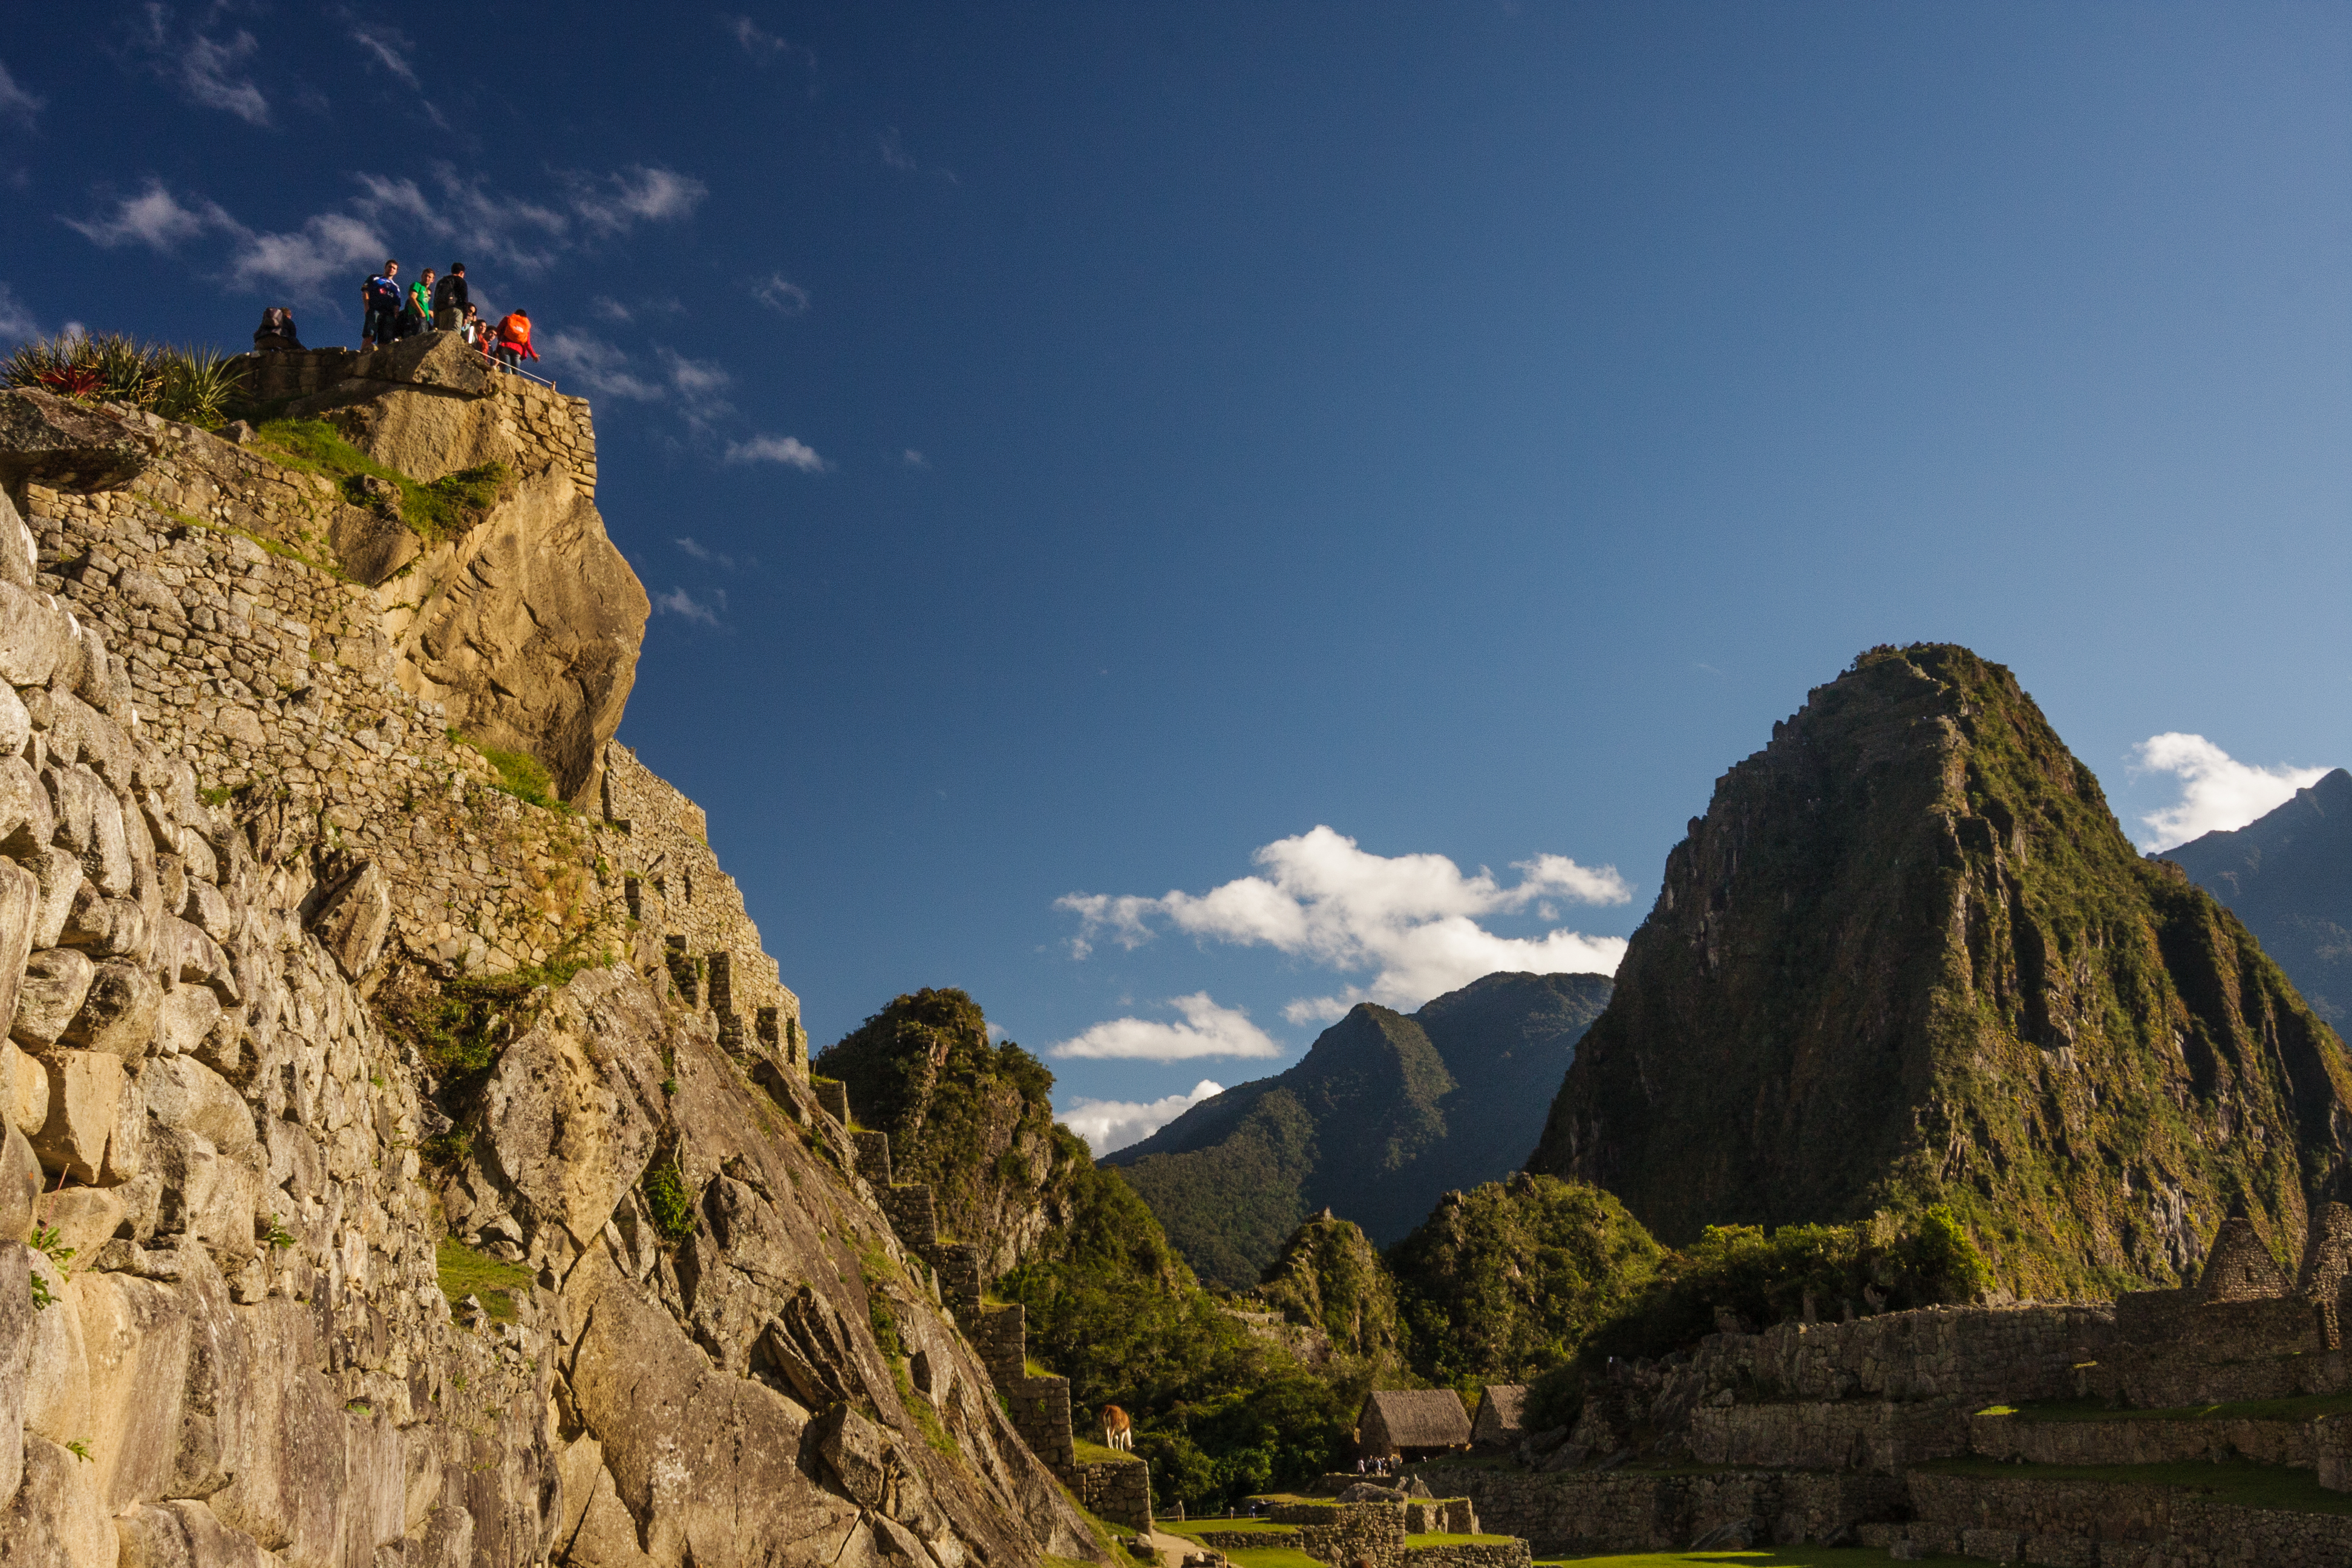 Overlooking Machu Picchu, another fantastic perspective from Isaiah Brookshire.